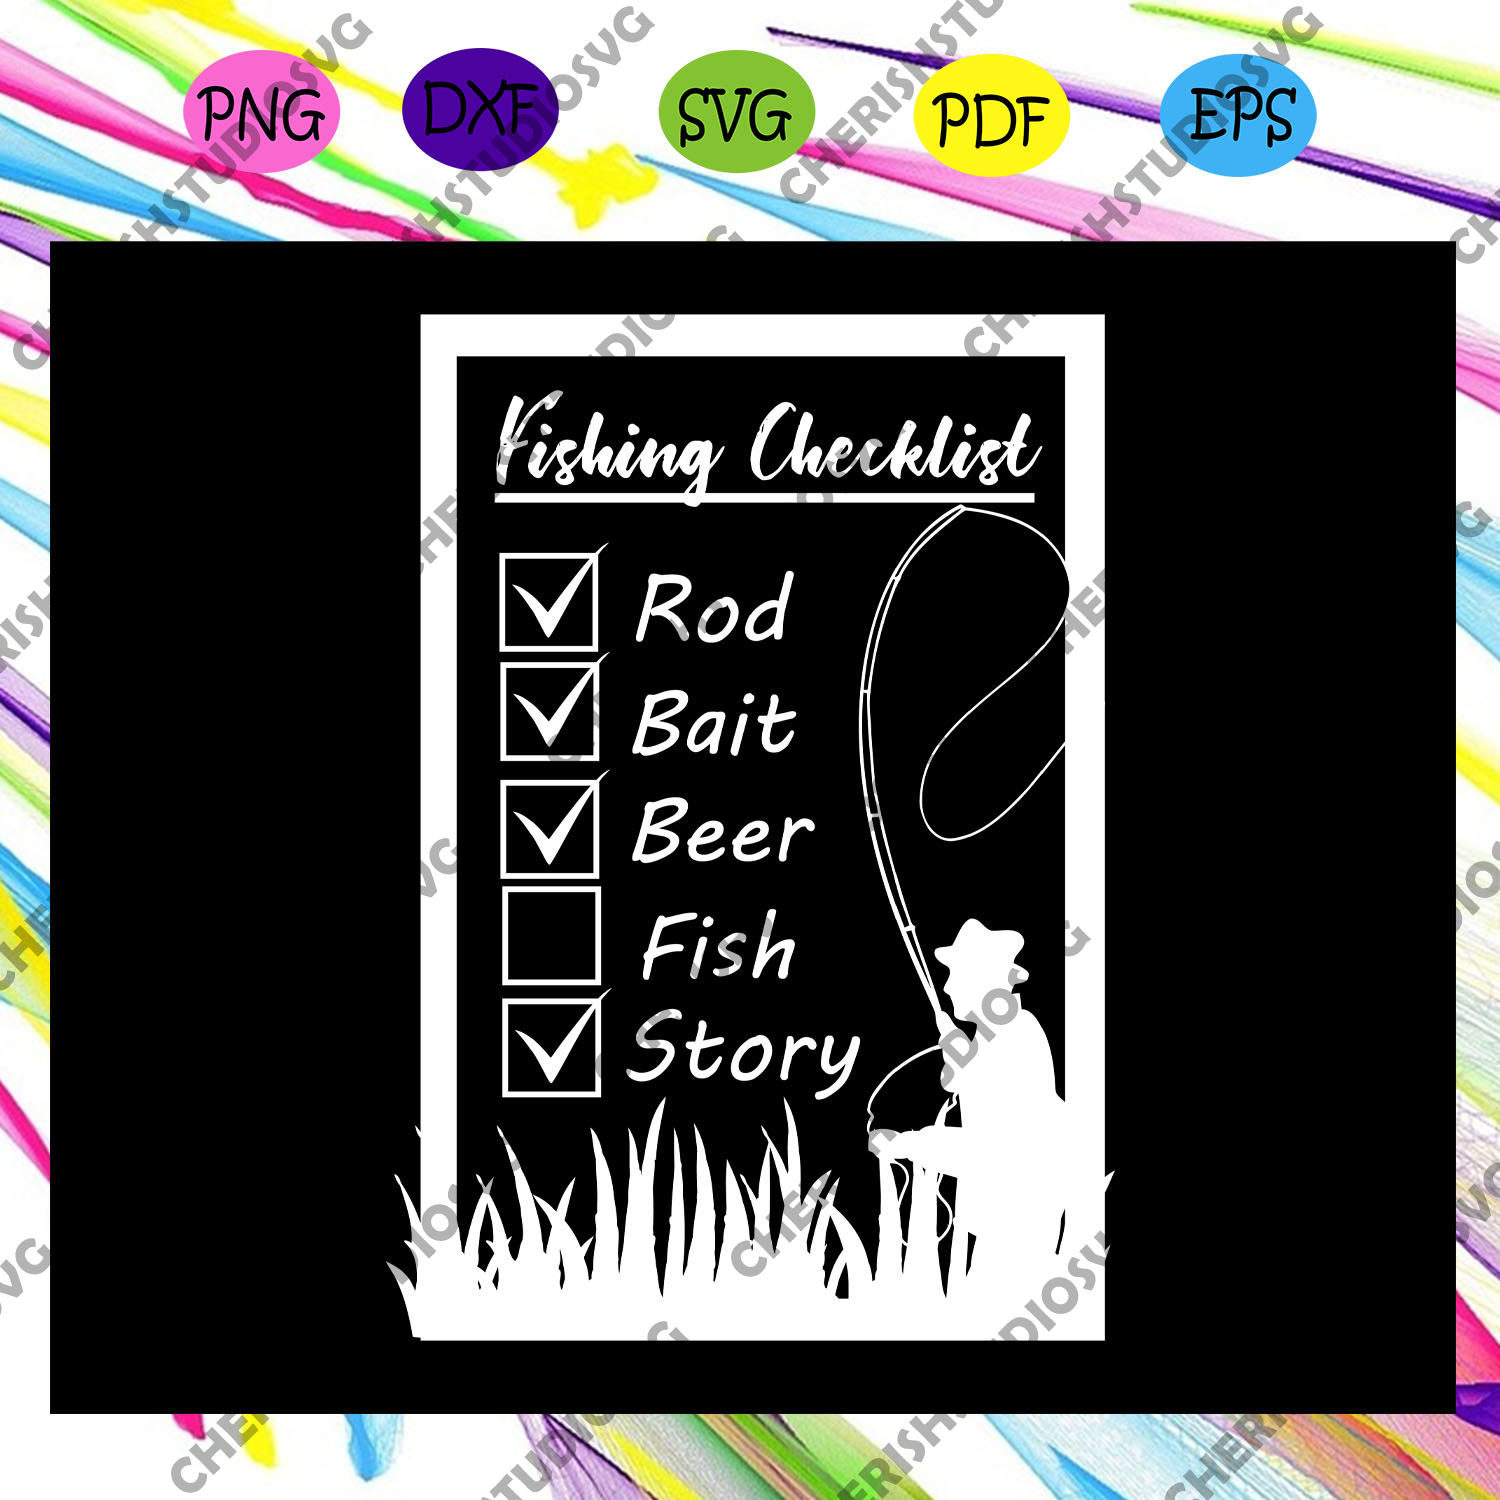 Fishing checklist svg,check list svg, Fishing girl svg, Fishing svg, Fish svg, easter hunt, hunting , hunting svg, fishing svg, fishing decor, Fishing gift, svg files for cricut, svg files